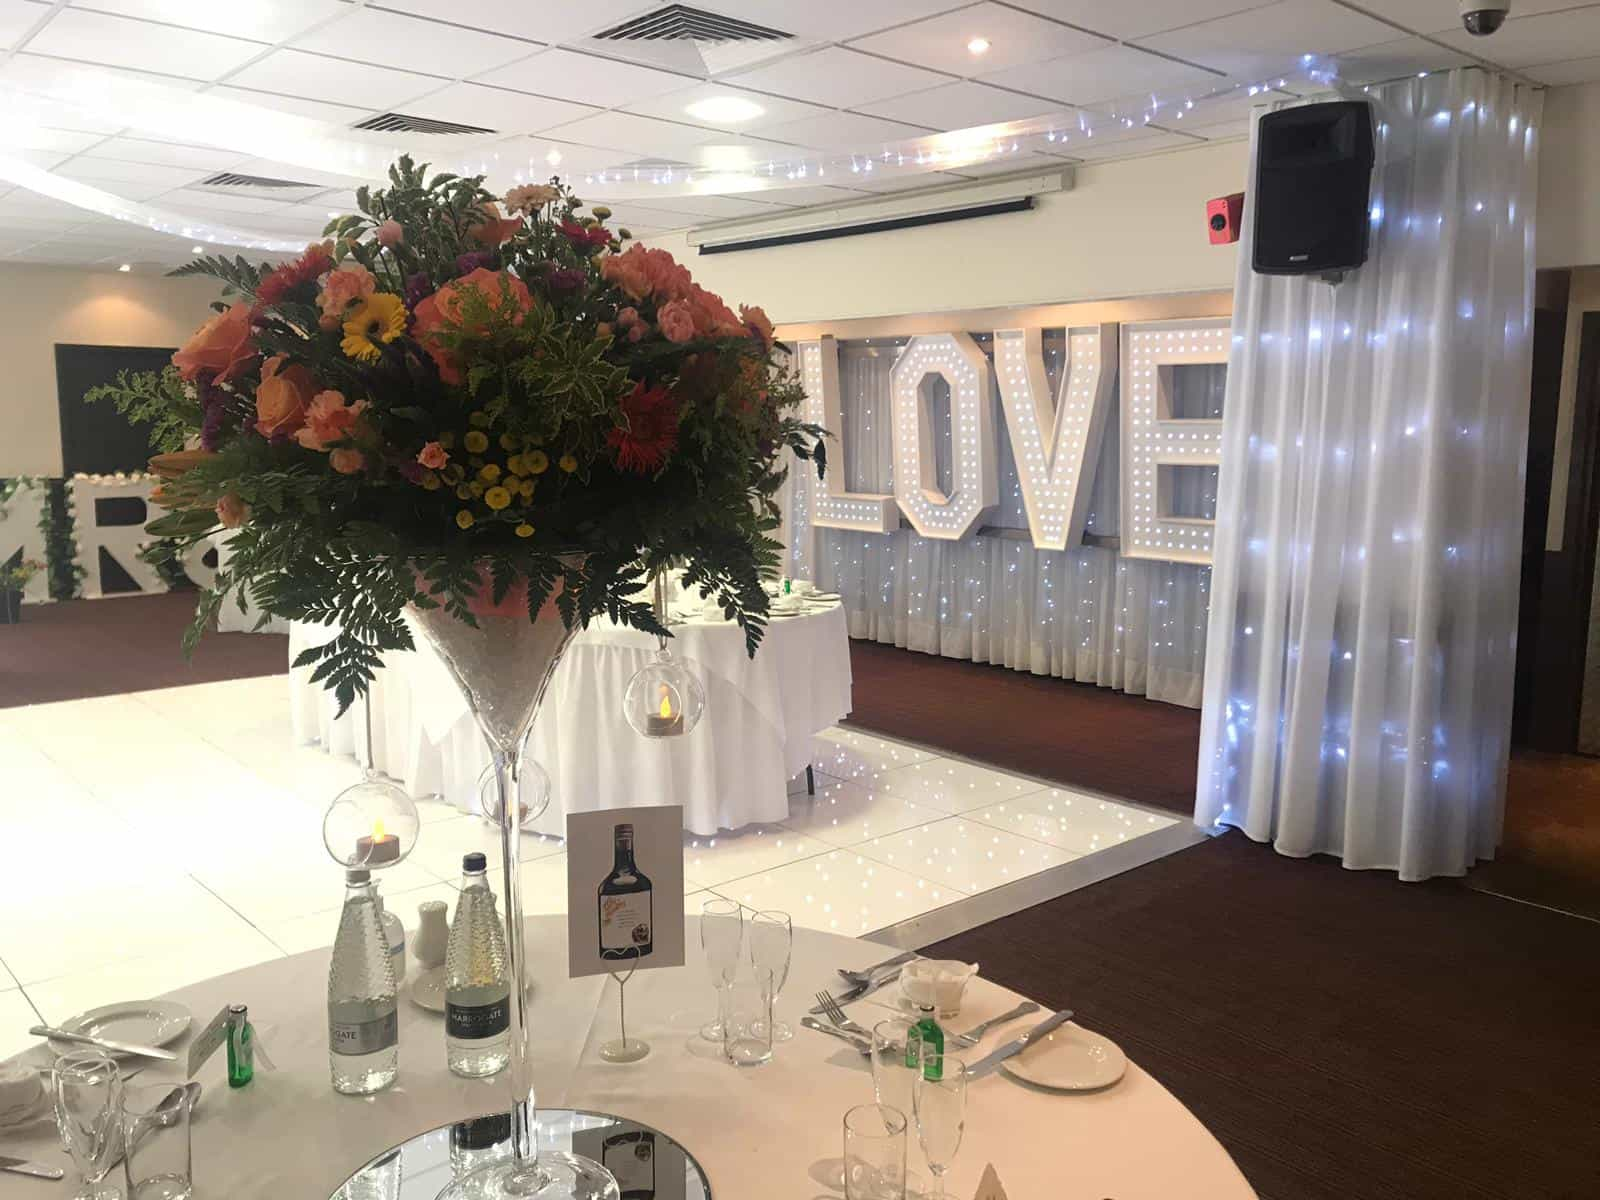 Wedding breakfast dressing with floral and white decor combination. White dancefloor with white silvery backdrop and floral arrangements on the tables